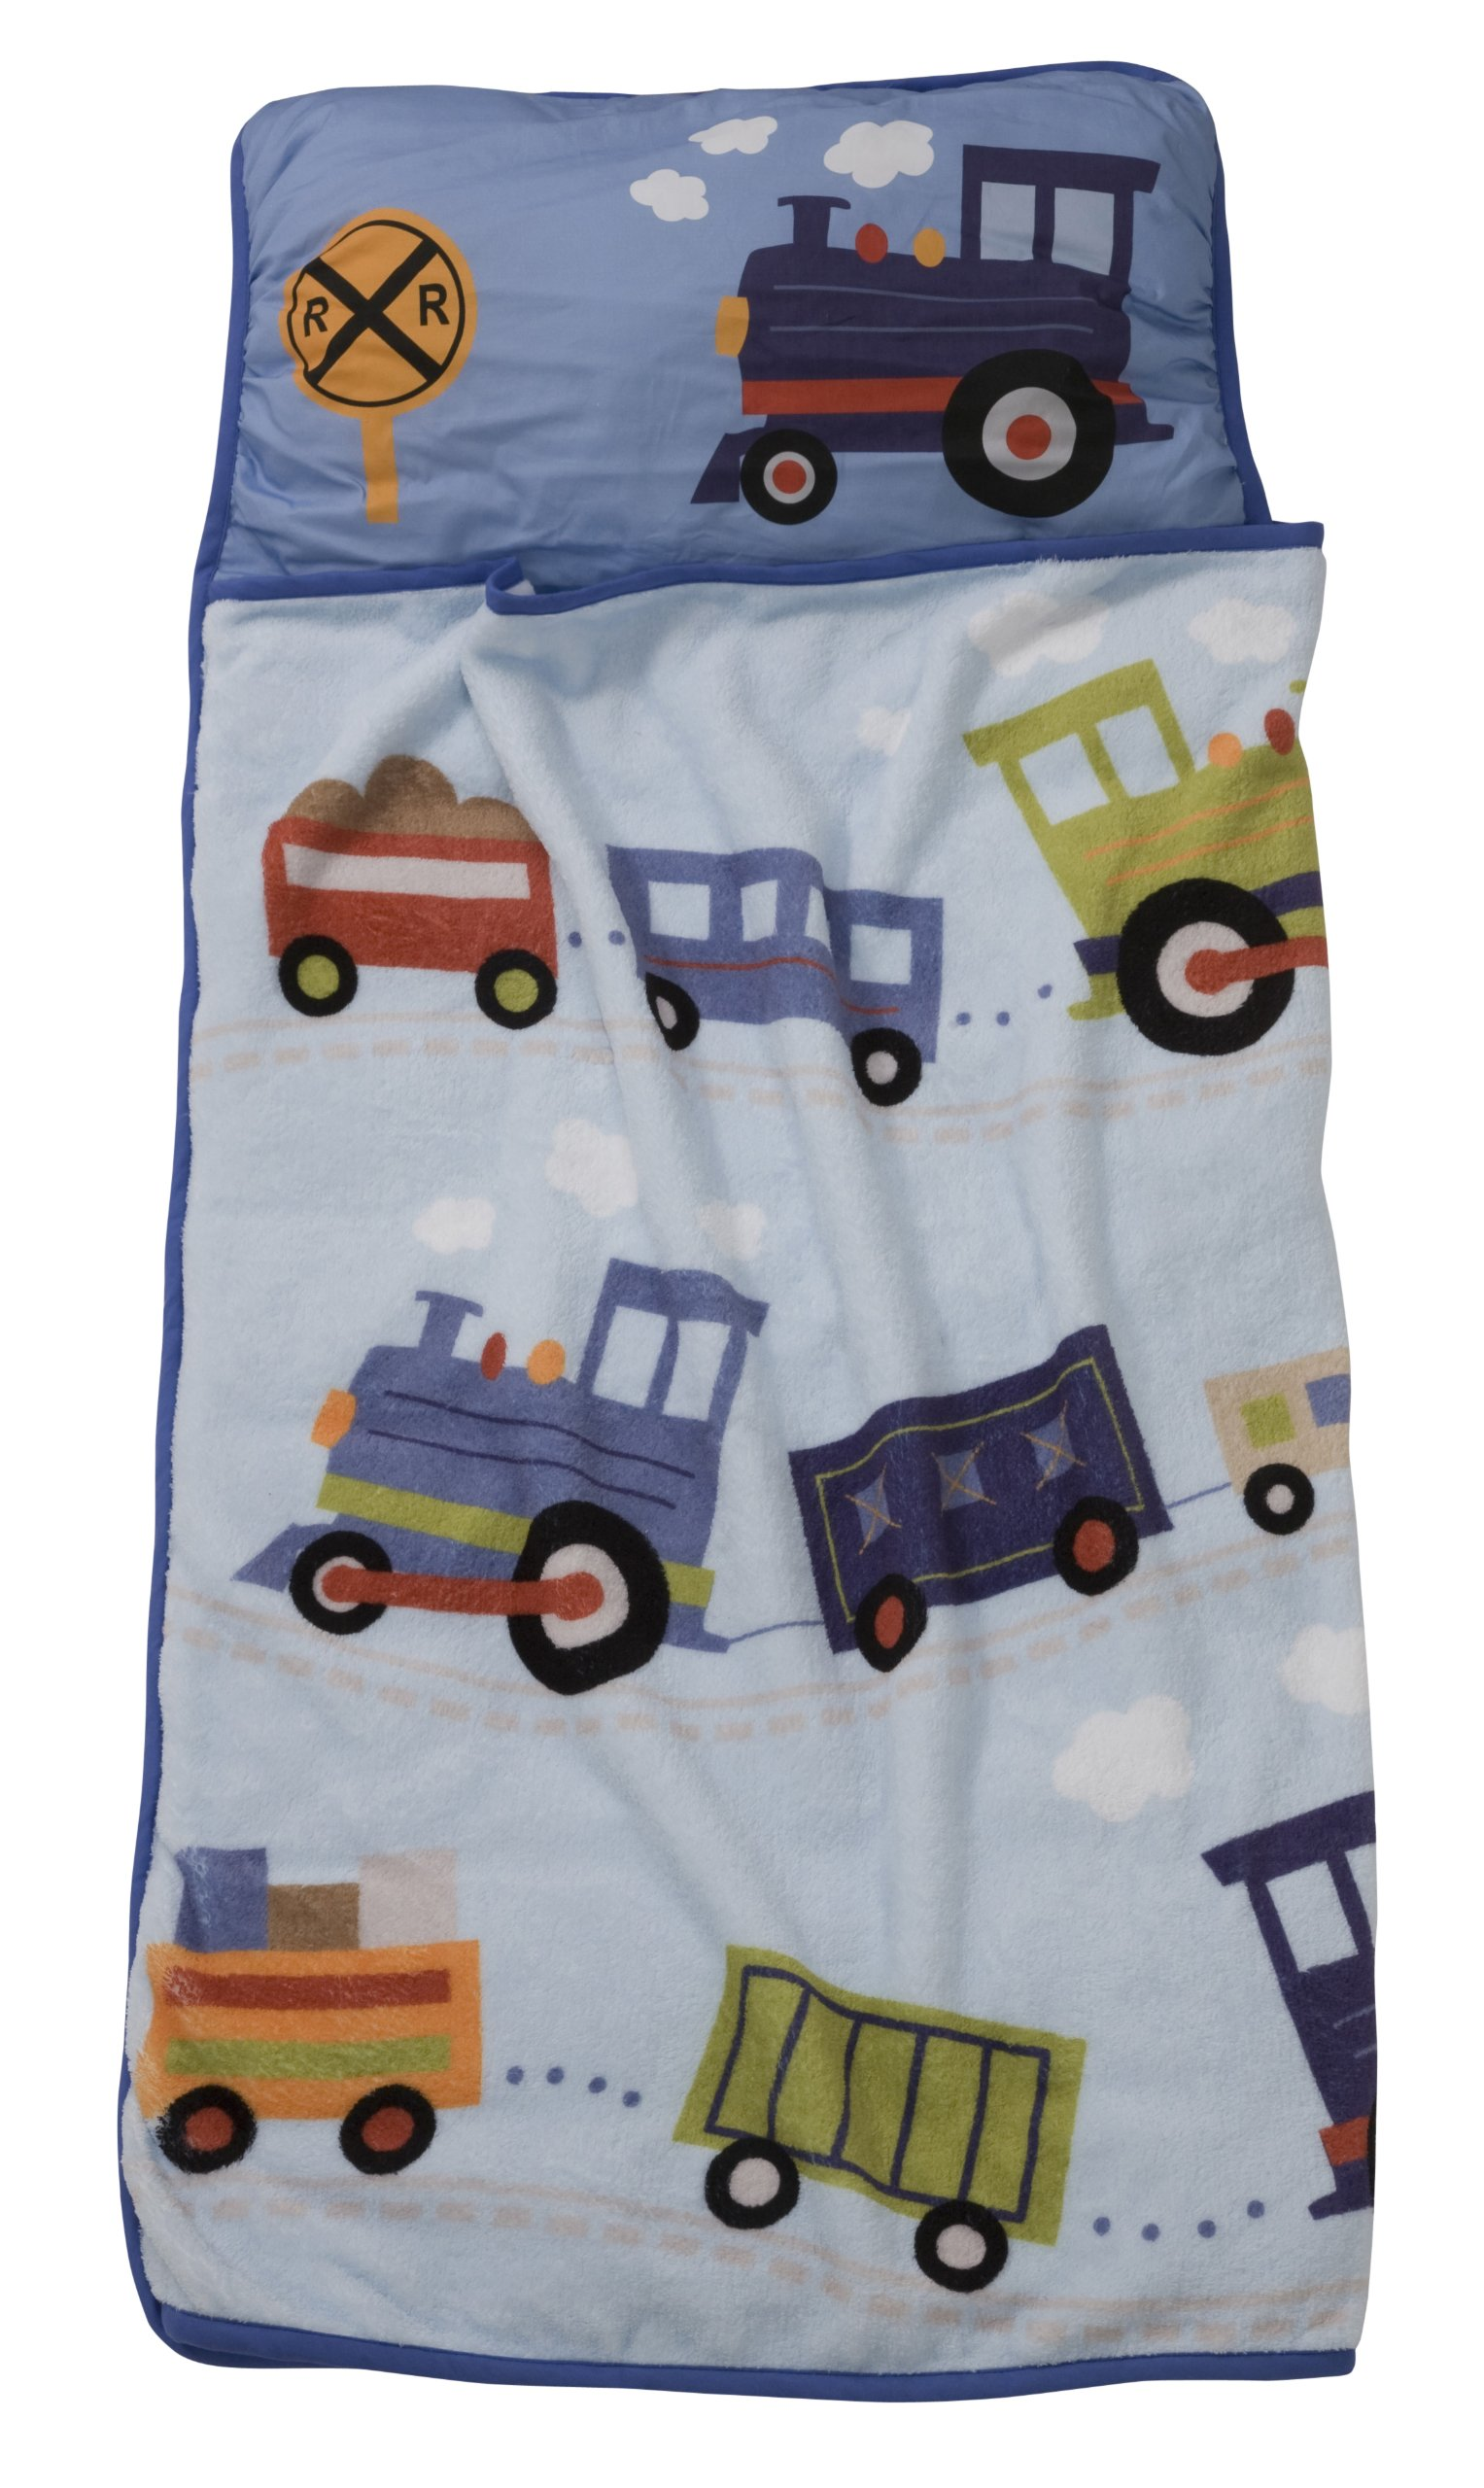 Lambs & Ivy Nap Mat, Train